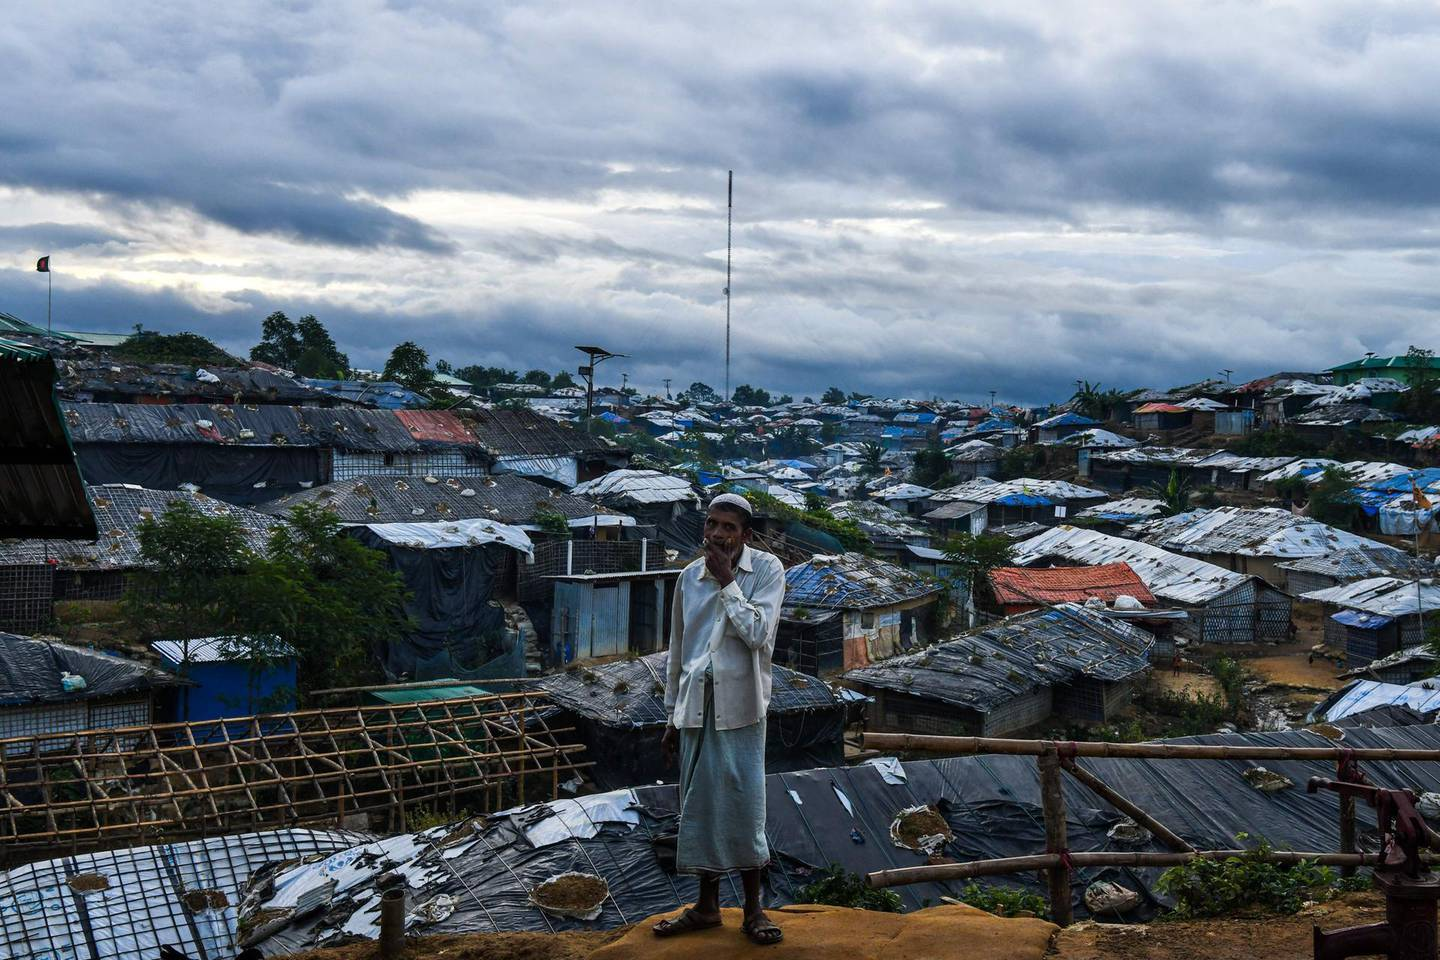 A Rohingya refugee man stands before Kutupalong camp in Ukhia near Cox's Bazar on August 13, 2018. - Nearly 700,000 Rohingya fled Myanmar's Rakhine state last year to escape a violent military crackdown. (Photo by CHANDAN KHANNA / AFP)